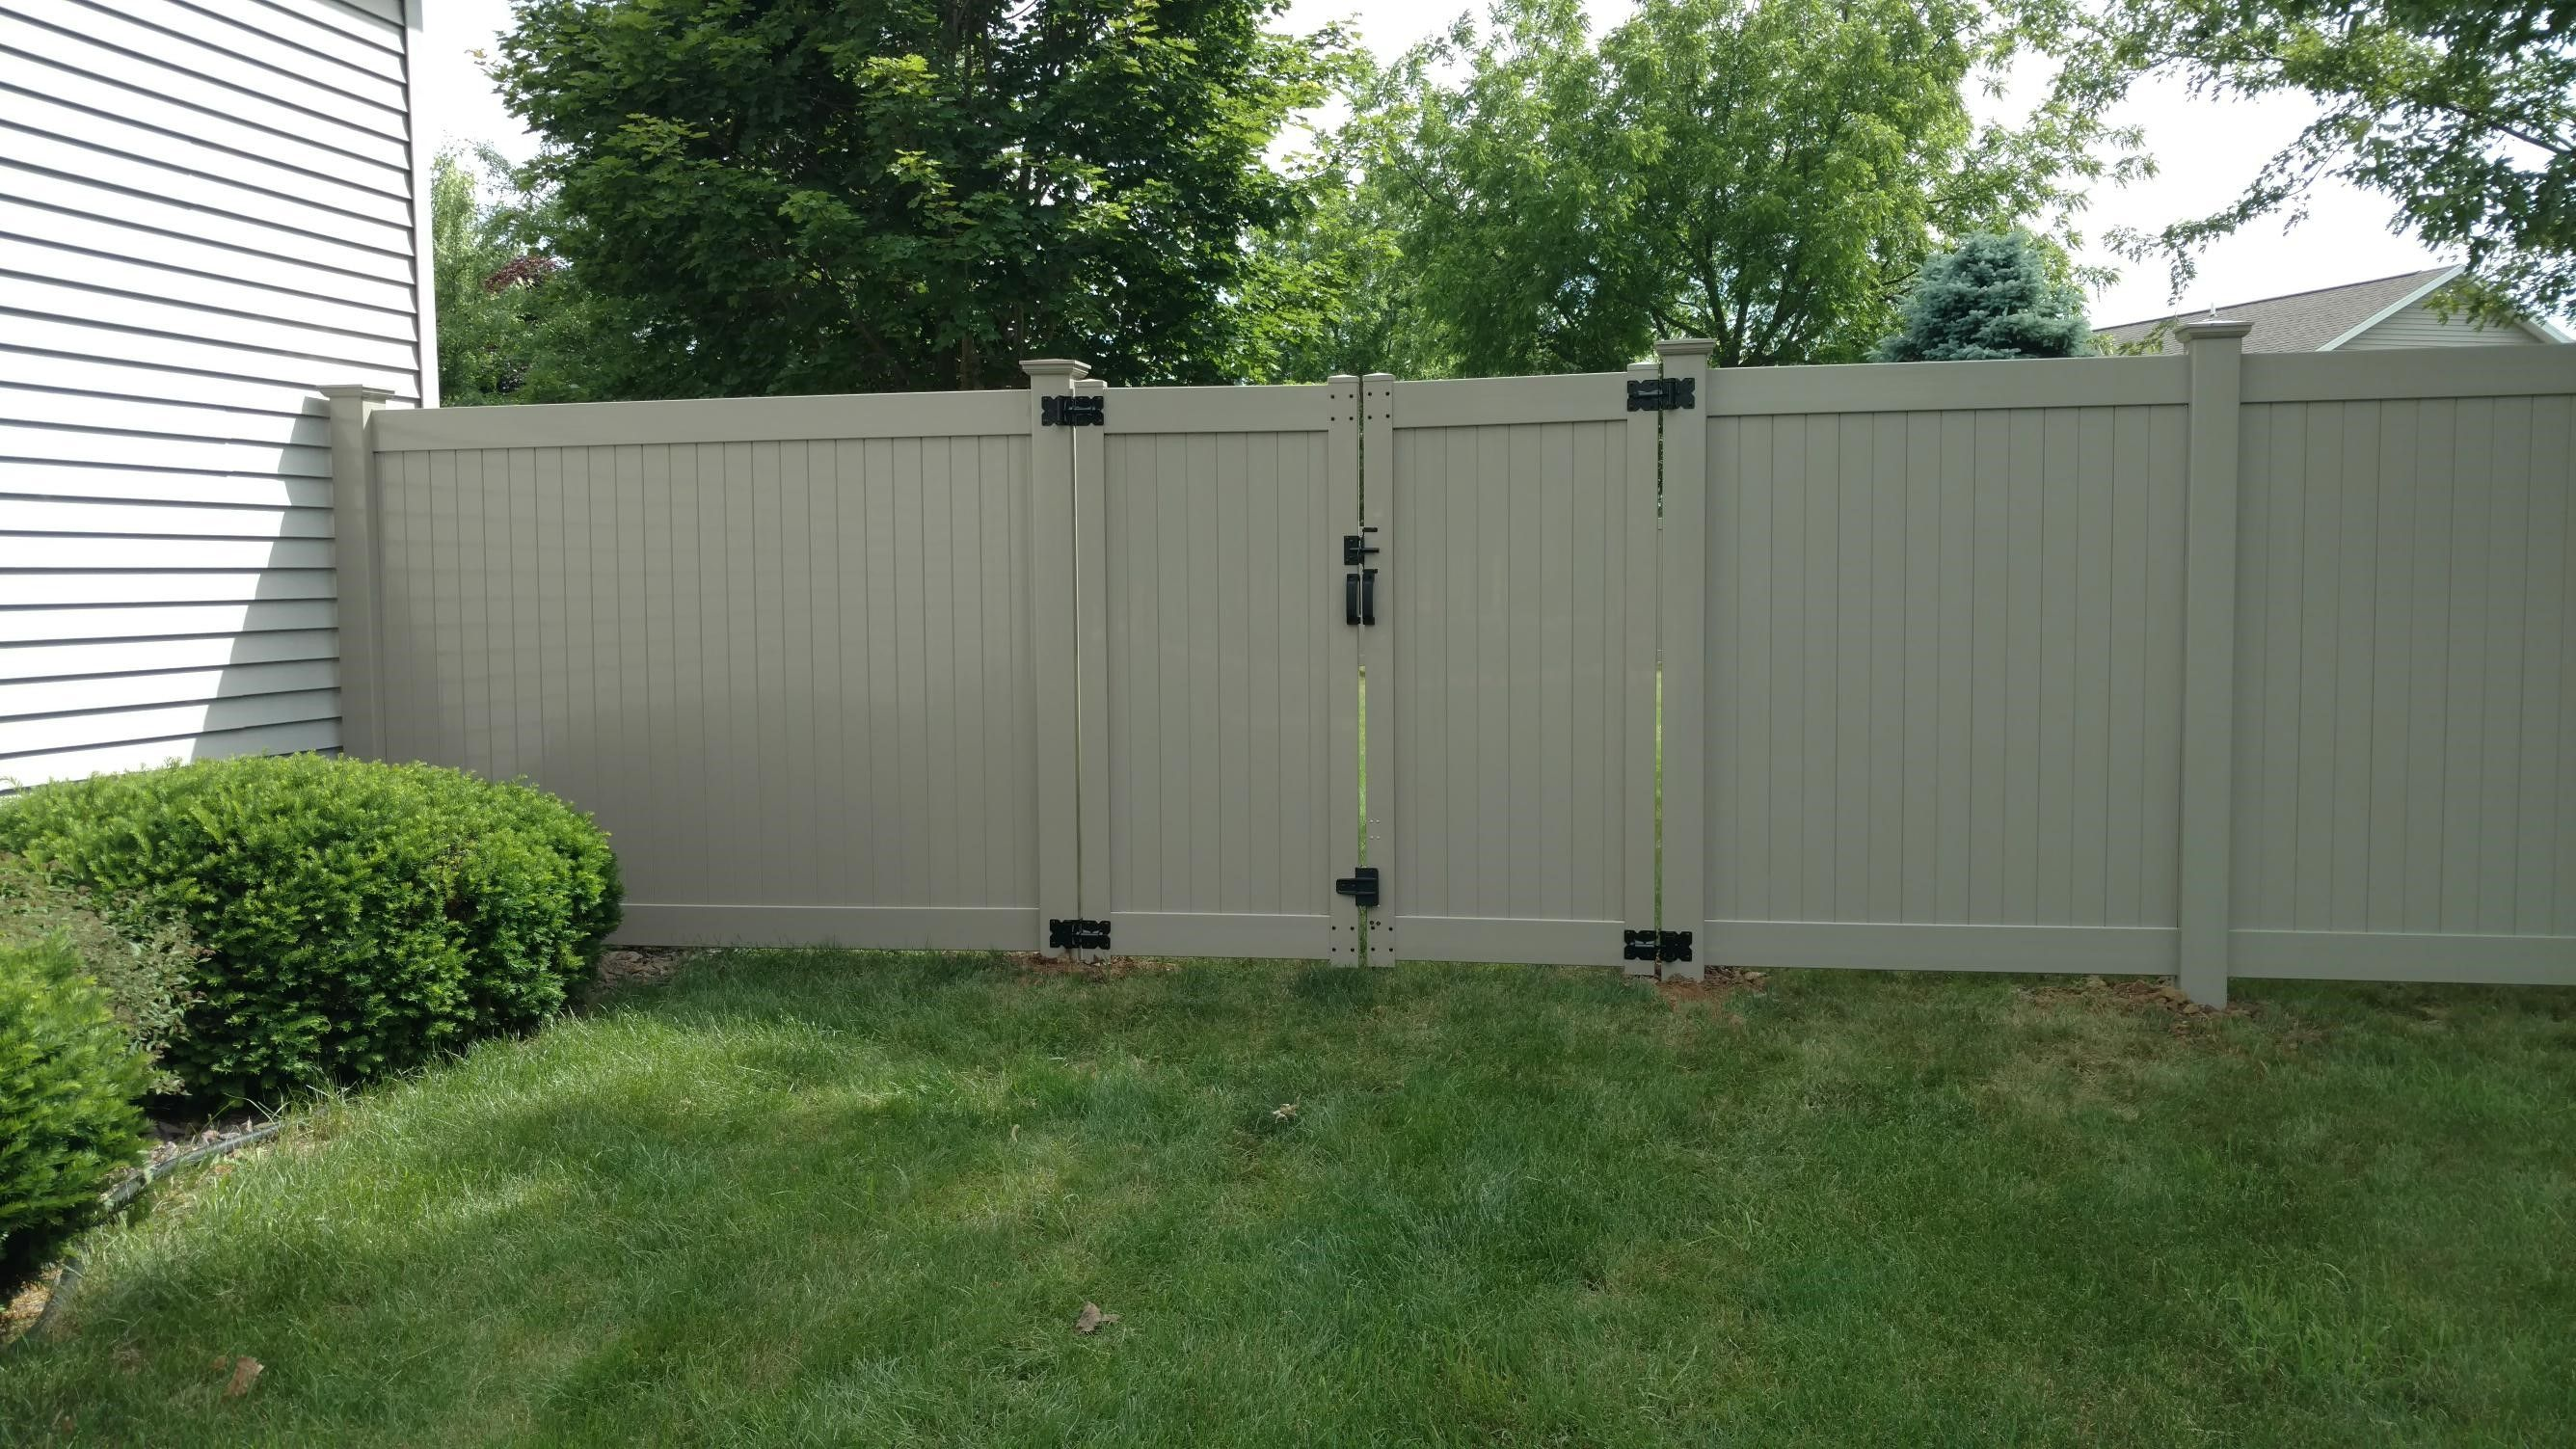 Polyvinyl Privacy Fence With Double Gate Vinyl Fence Building A Fence Security Fence